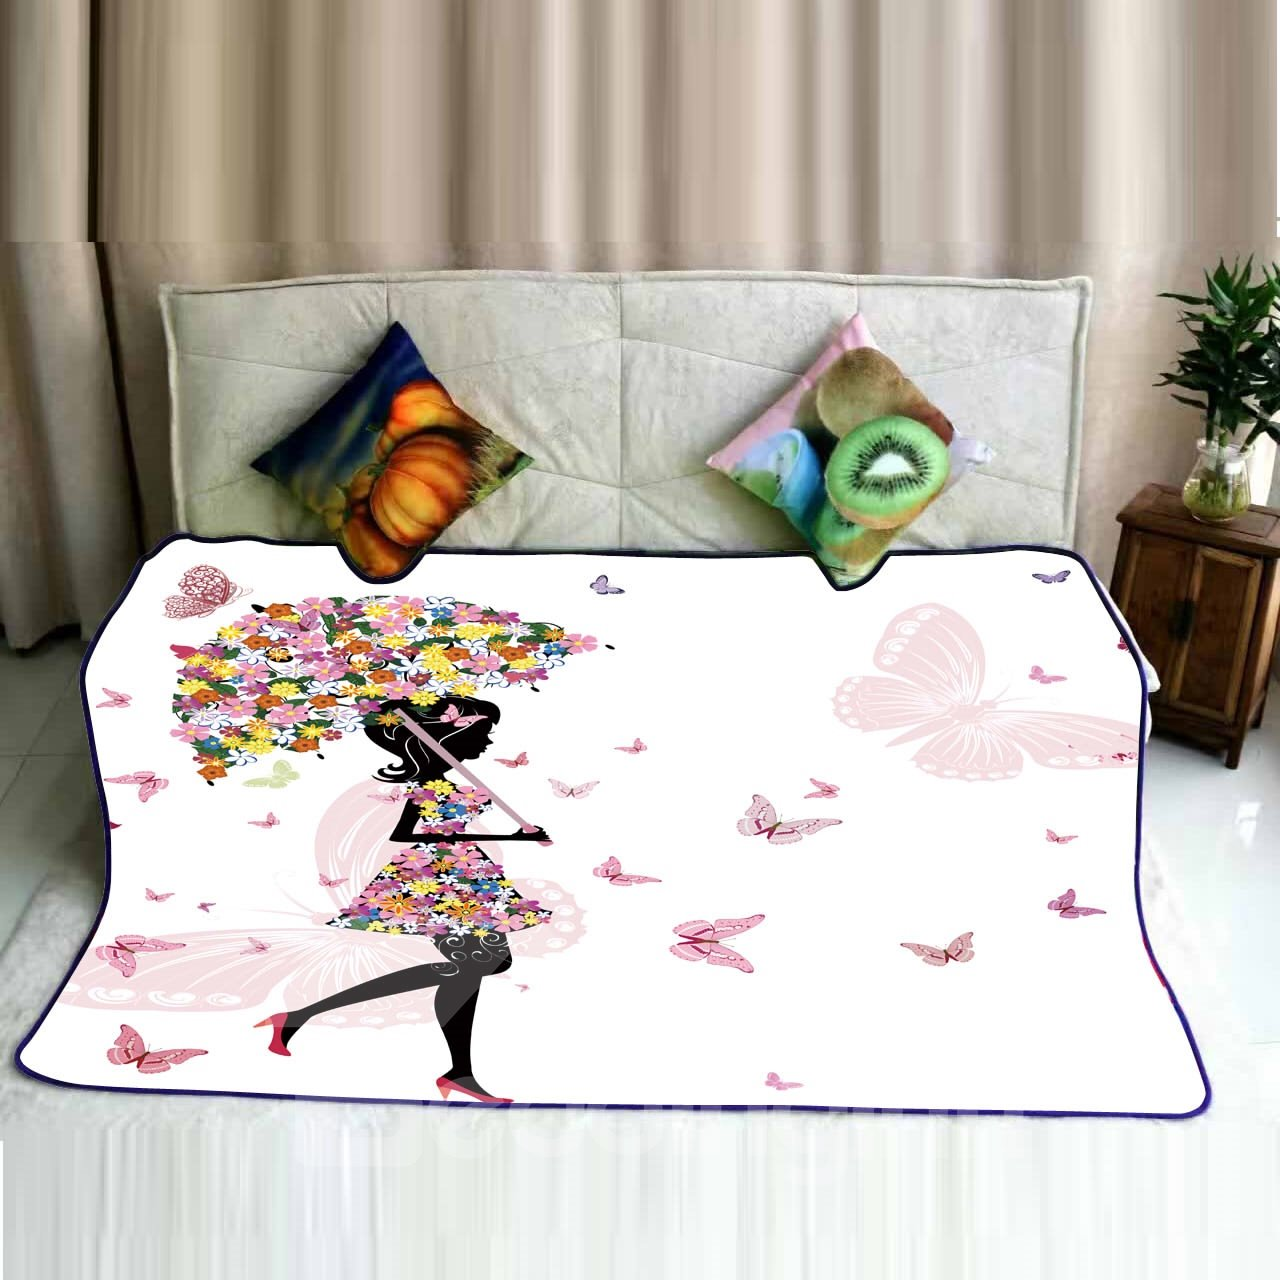 Floral Butterfly Girl with Umbrella Pattern Flannel Bed Blankets